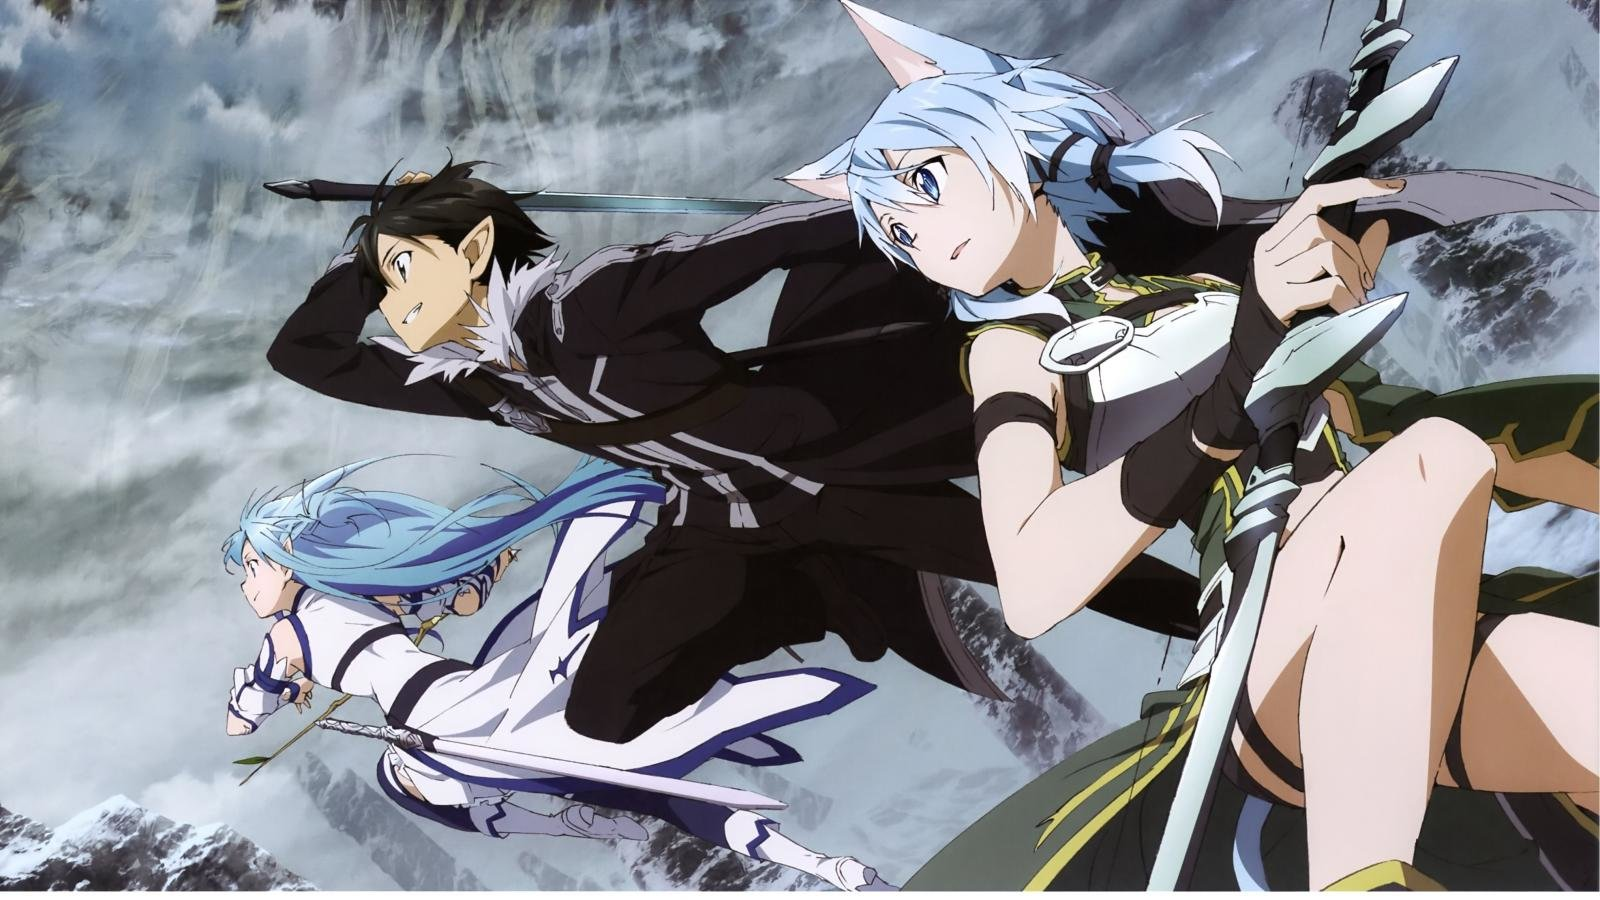 Download hd 1600x900 Sword Art Online 2 (II) PC background ID:112305 for free